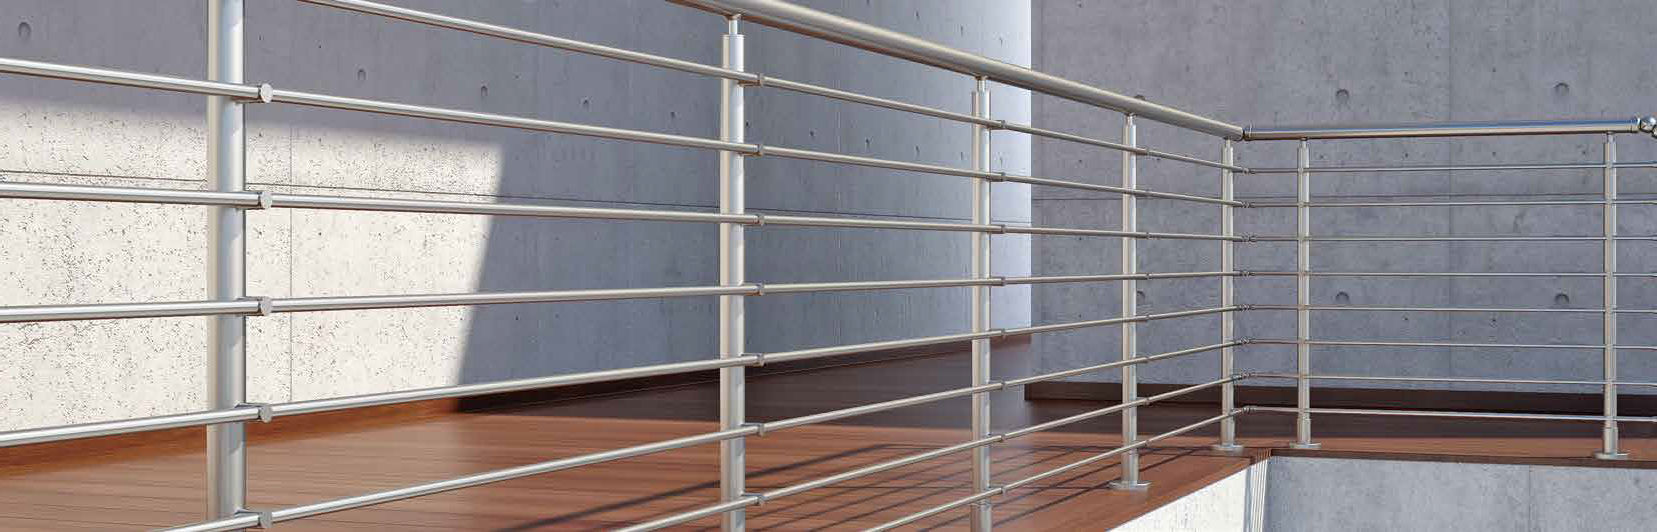 Aluminum profile / for balconies / for railing - F50 ACCORD